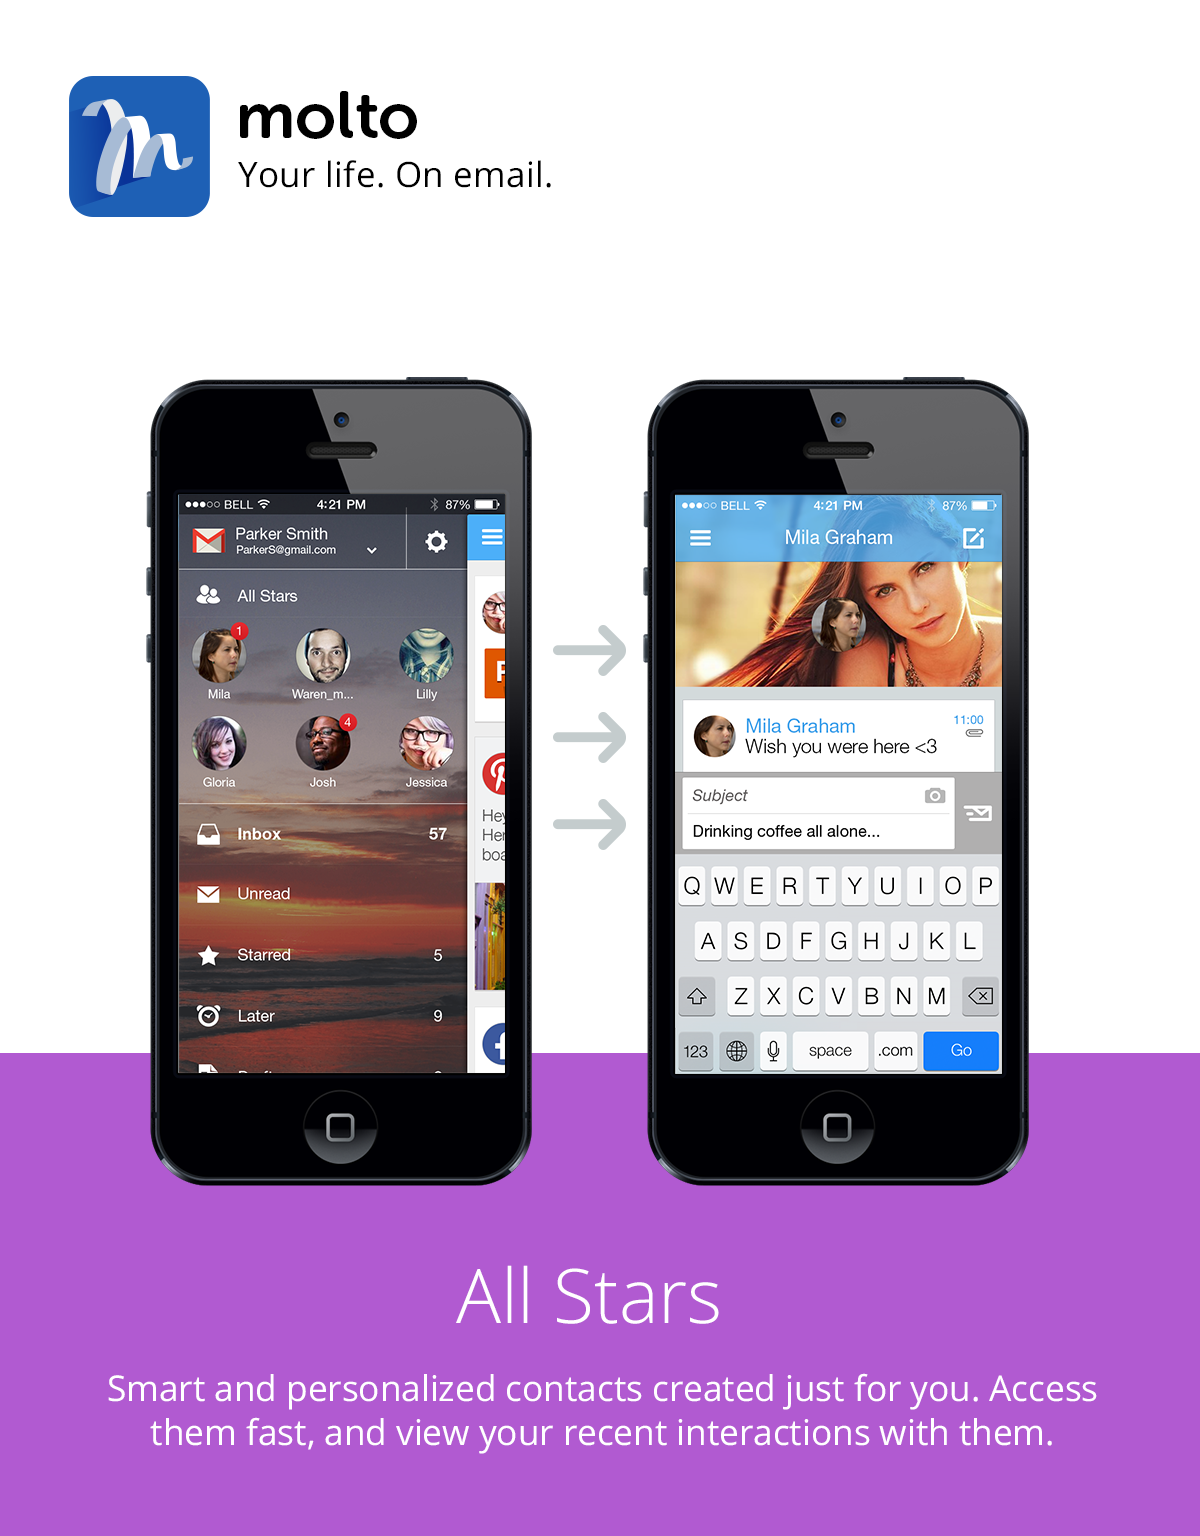 Molto-The New iPhone Email App by Perion Set to Give an ...